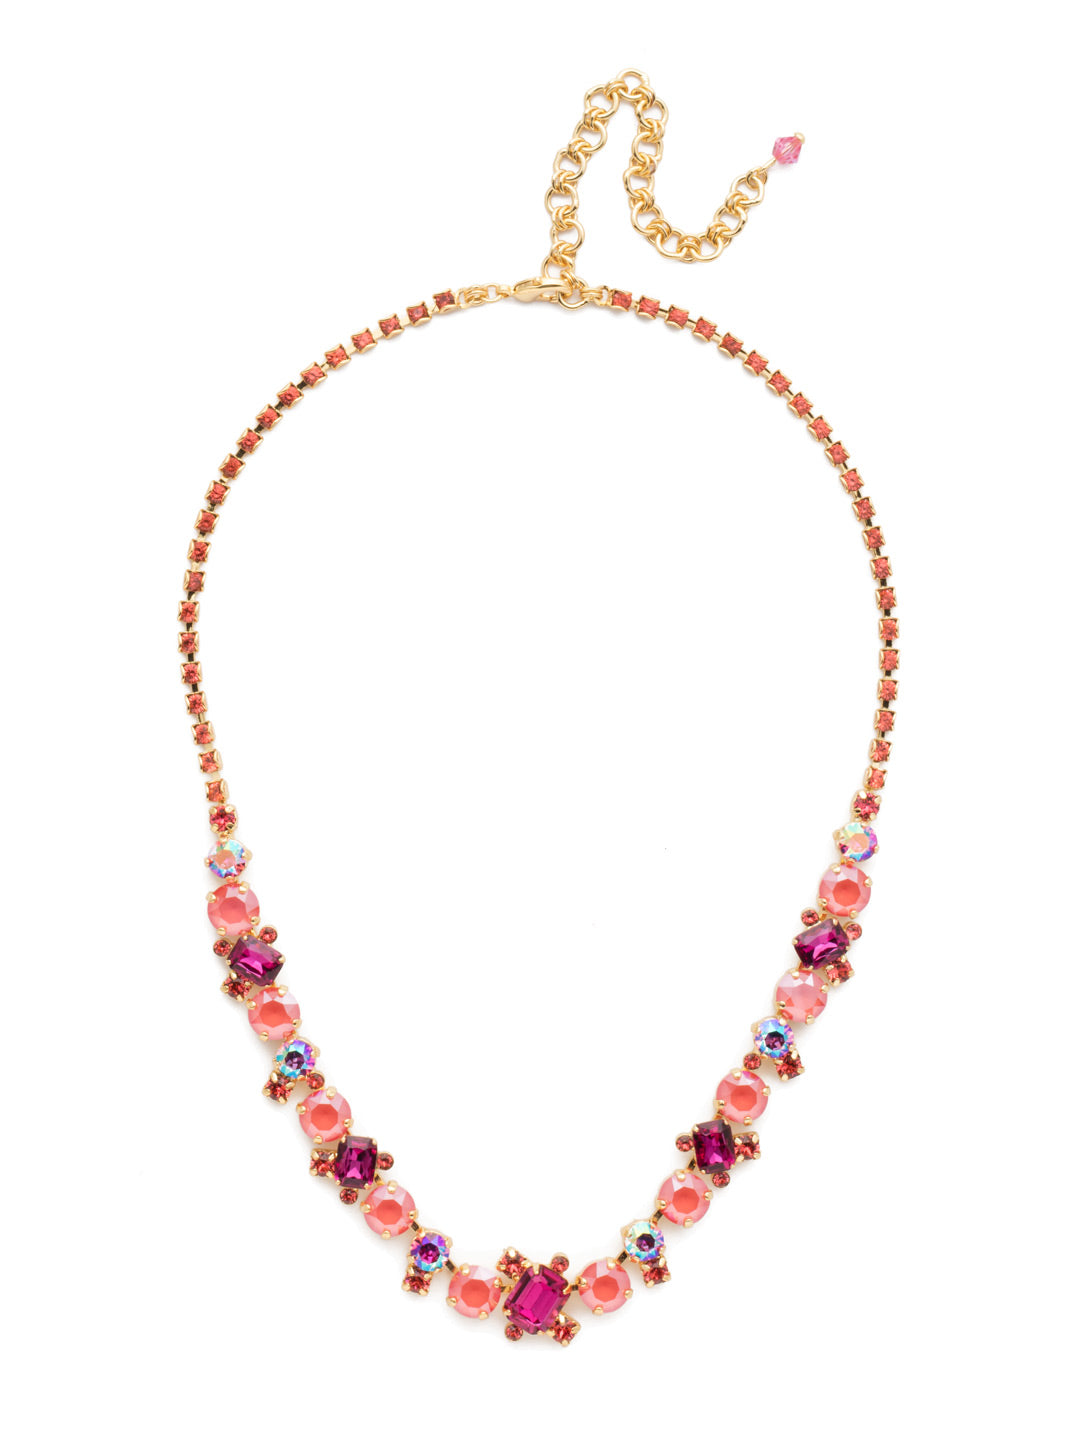 Sophisticated Tennis Necklace - NDK17BGBGA